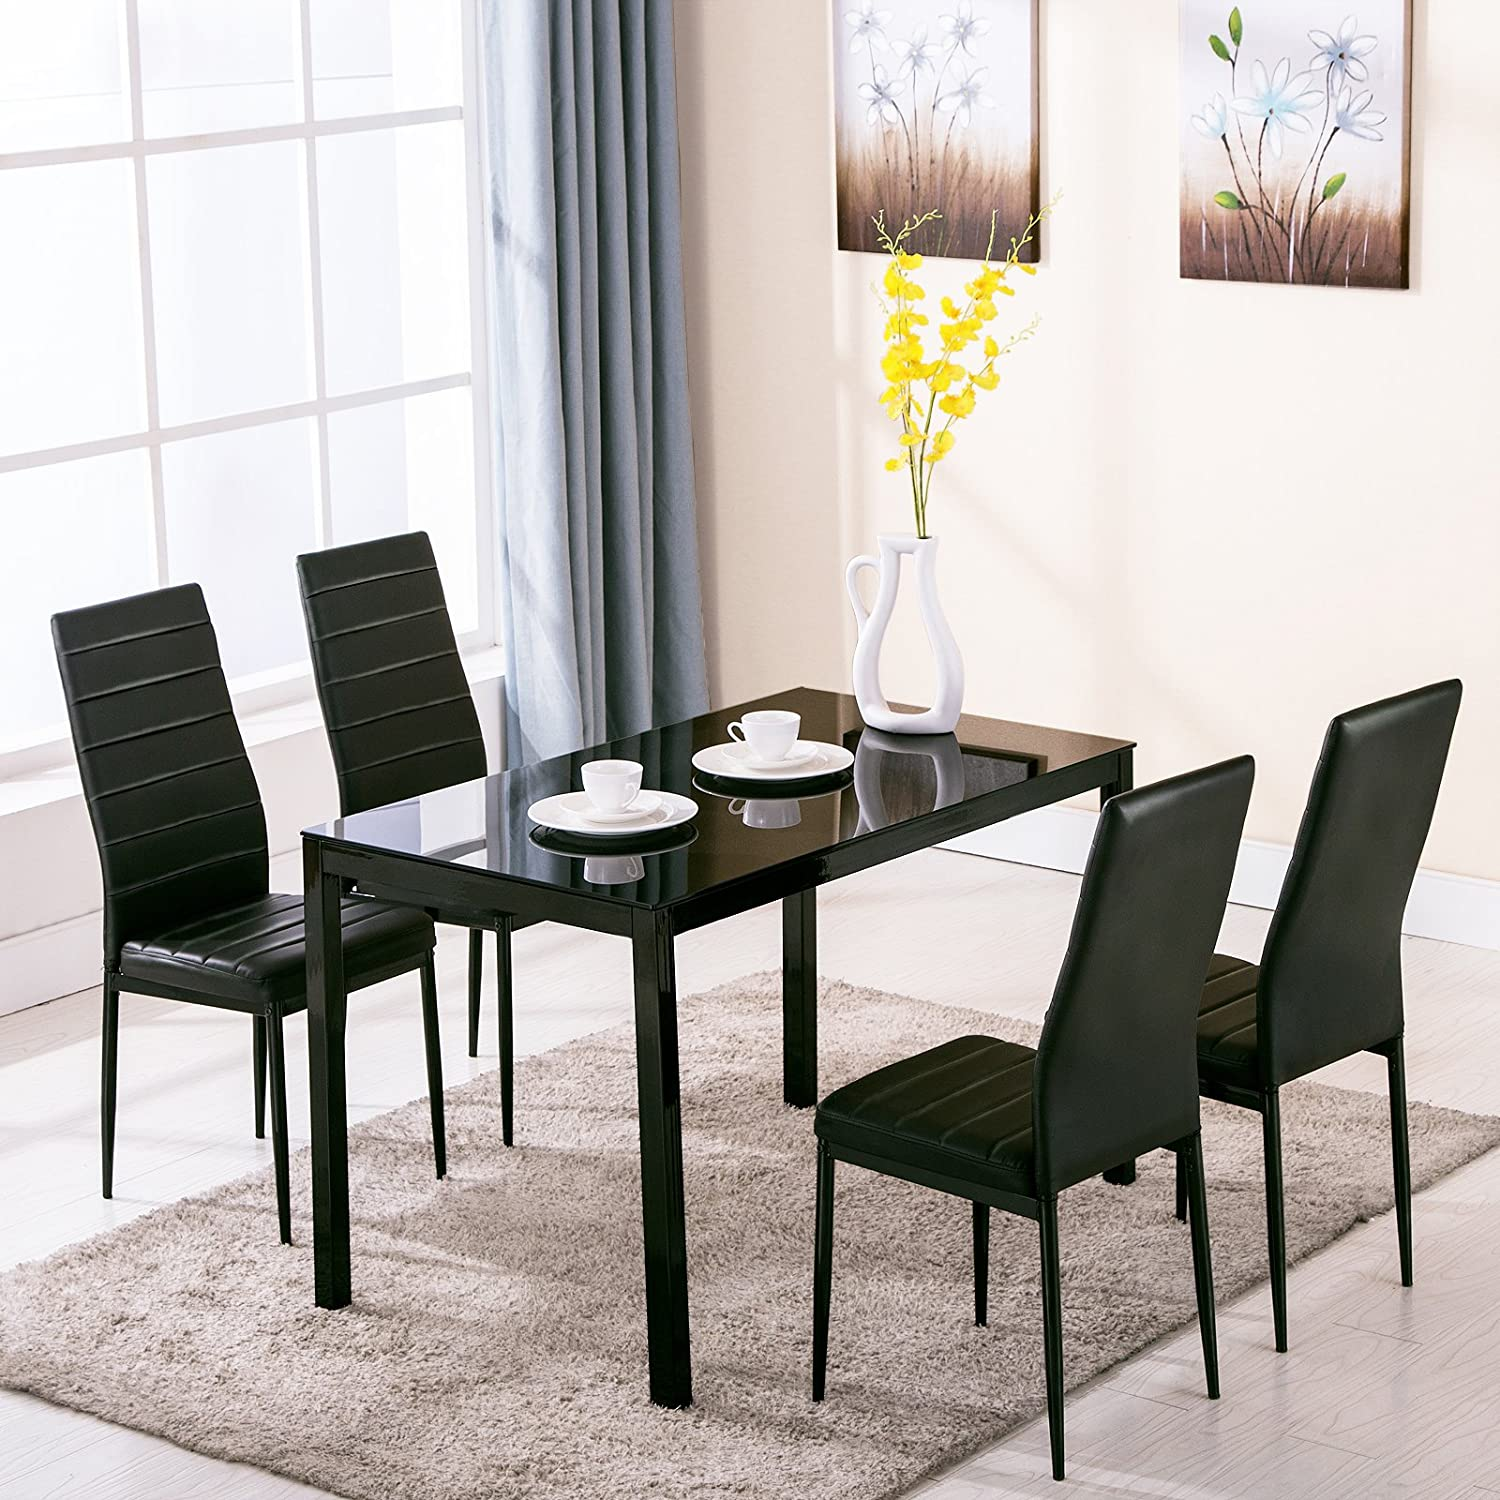 Amazon.com - 4Family 5 Piece Dining Table Set 4 Chairs Glass Metal ...